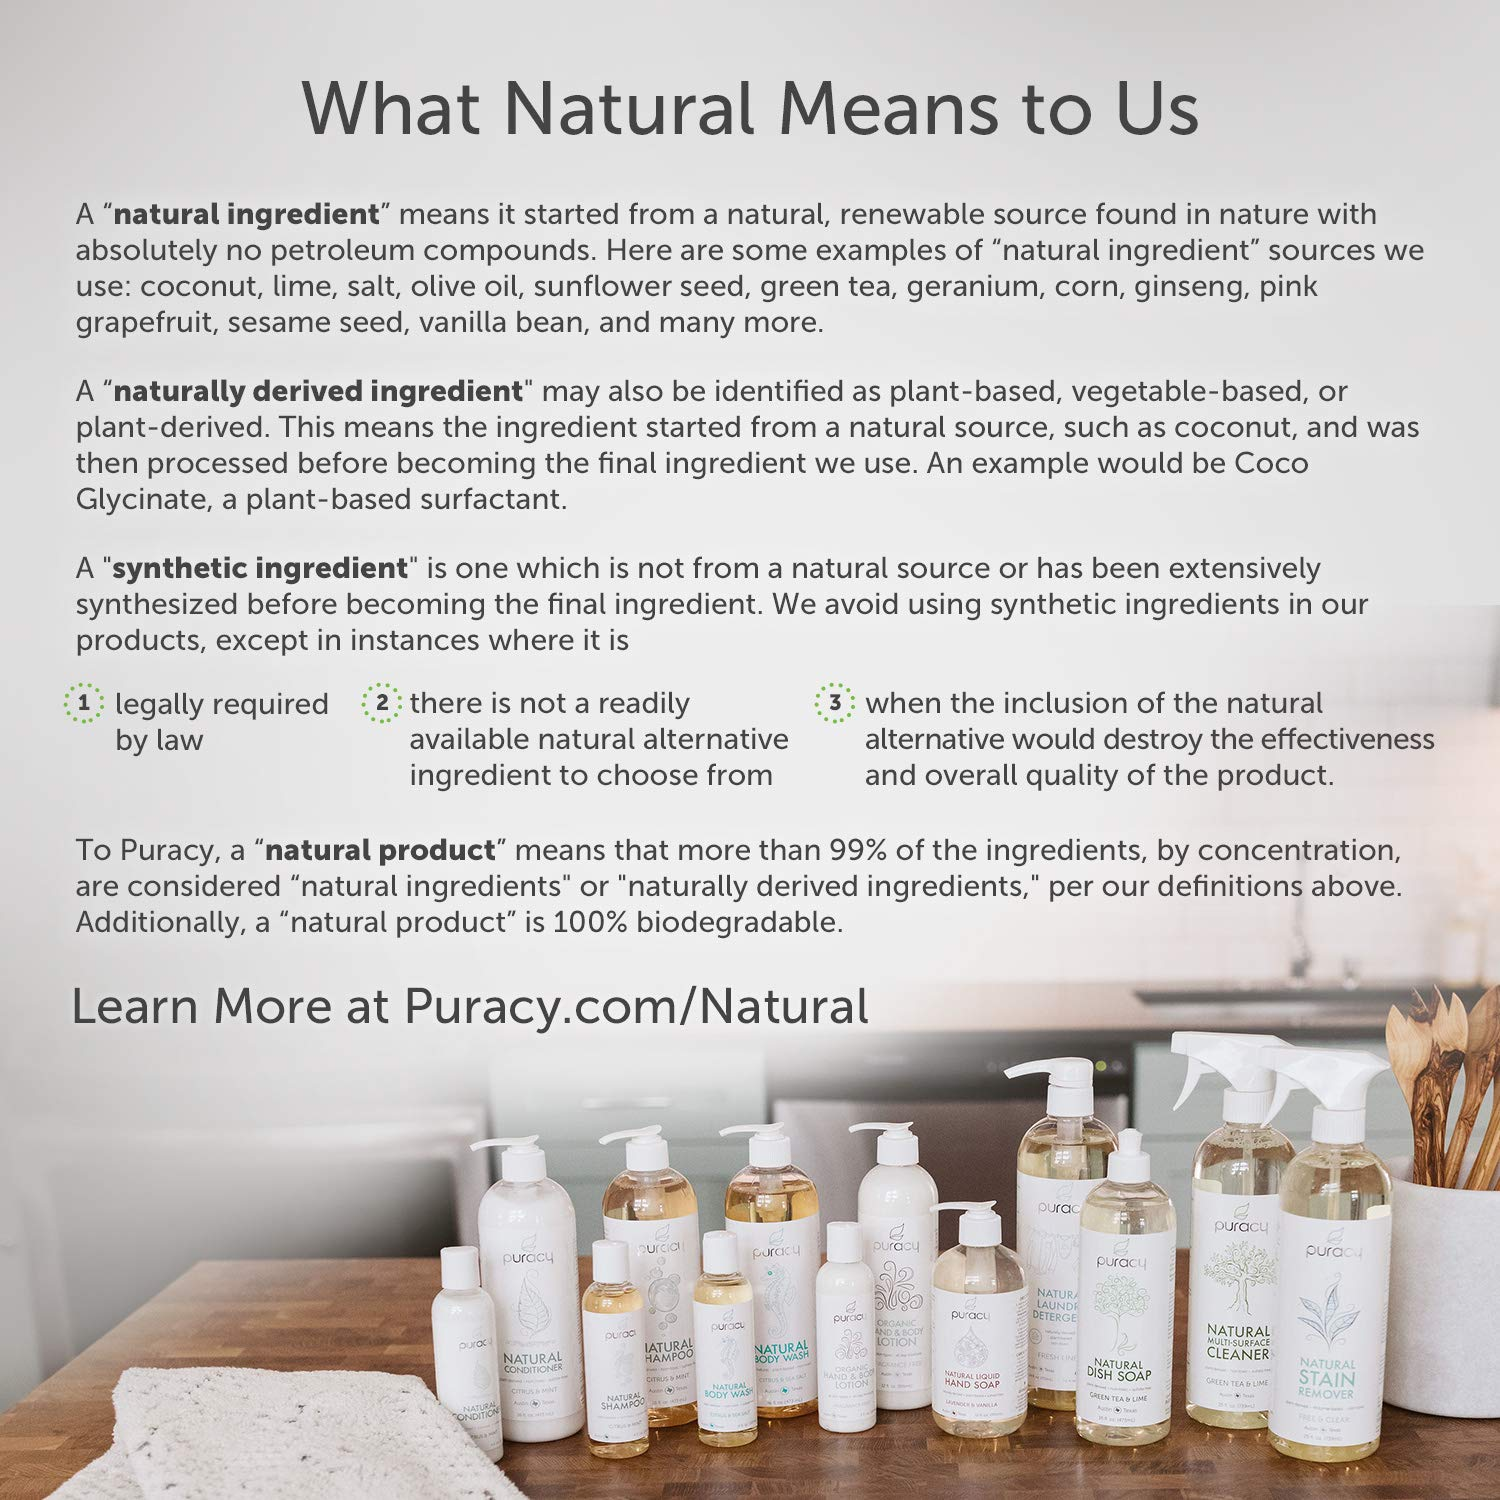 Puracy Natural Body Wash Refill, Sulfate-Free Shower Gel Daily Cleanser, Citrus & Sea Salt, 64 Ounce by Puracy (Image #9)